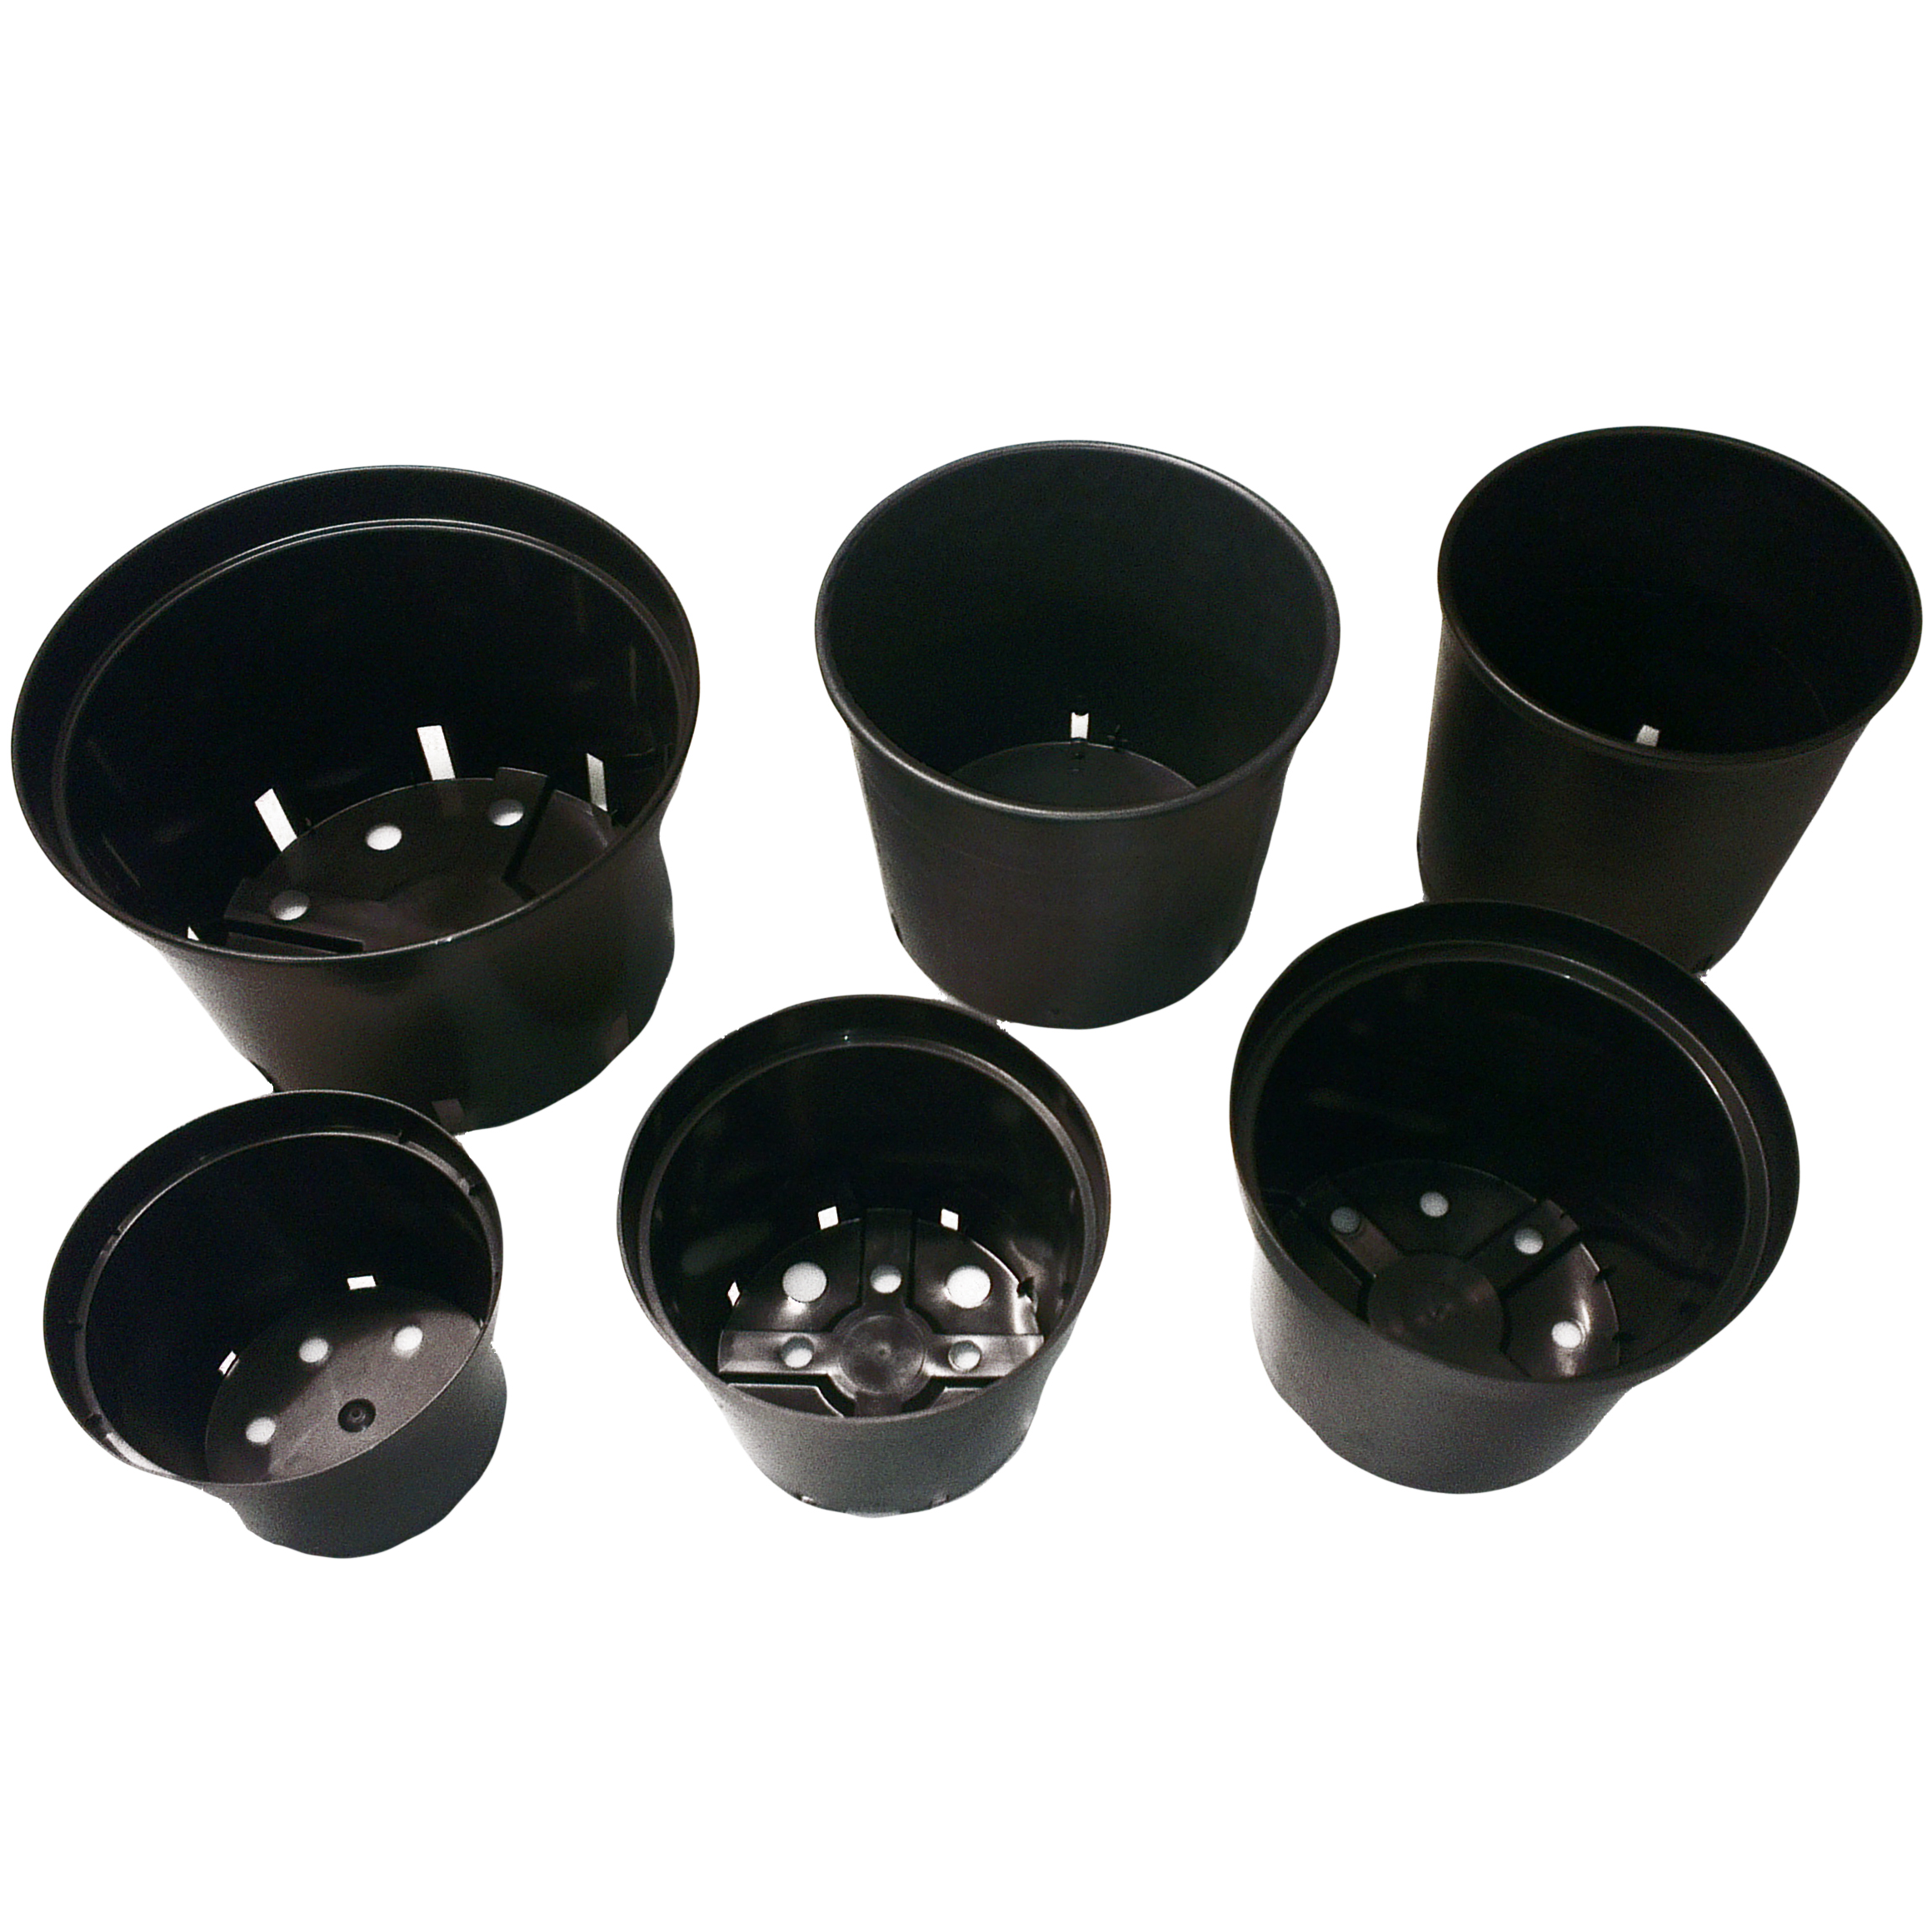 Strong Black Plastic Plant Flower Pots in Various Sizes